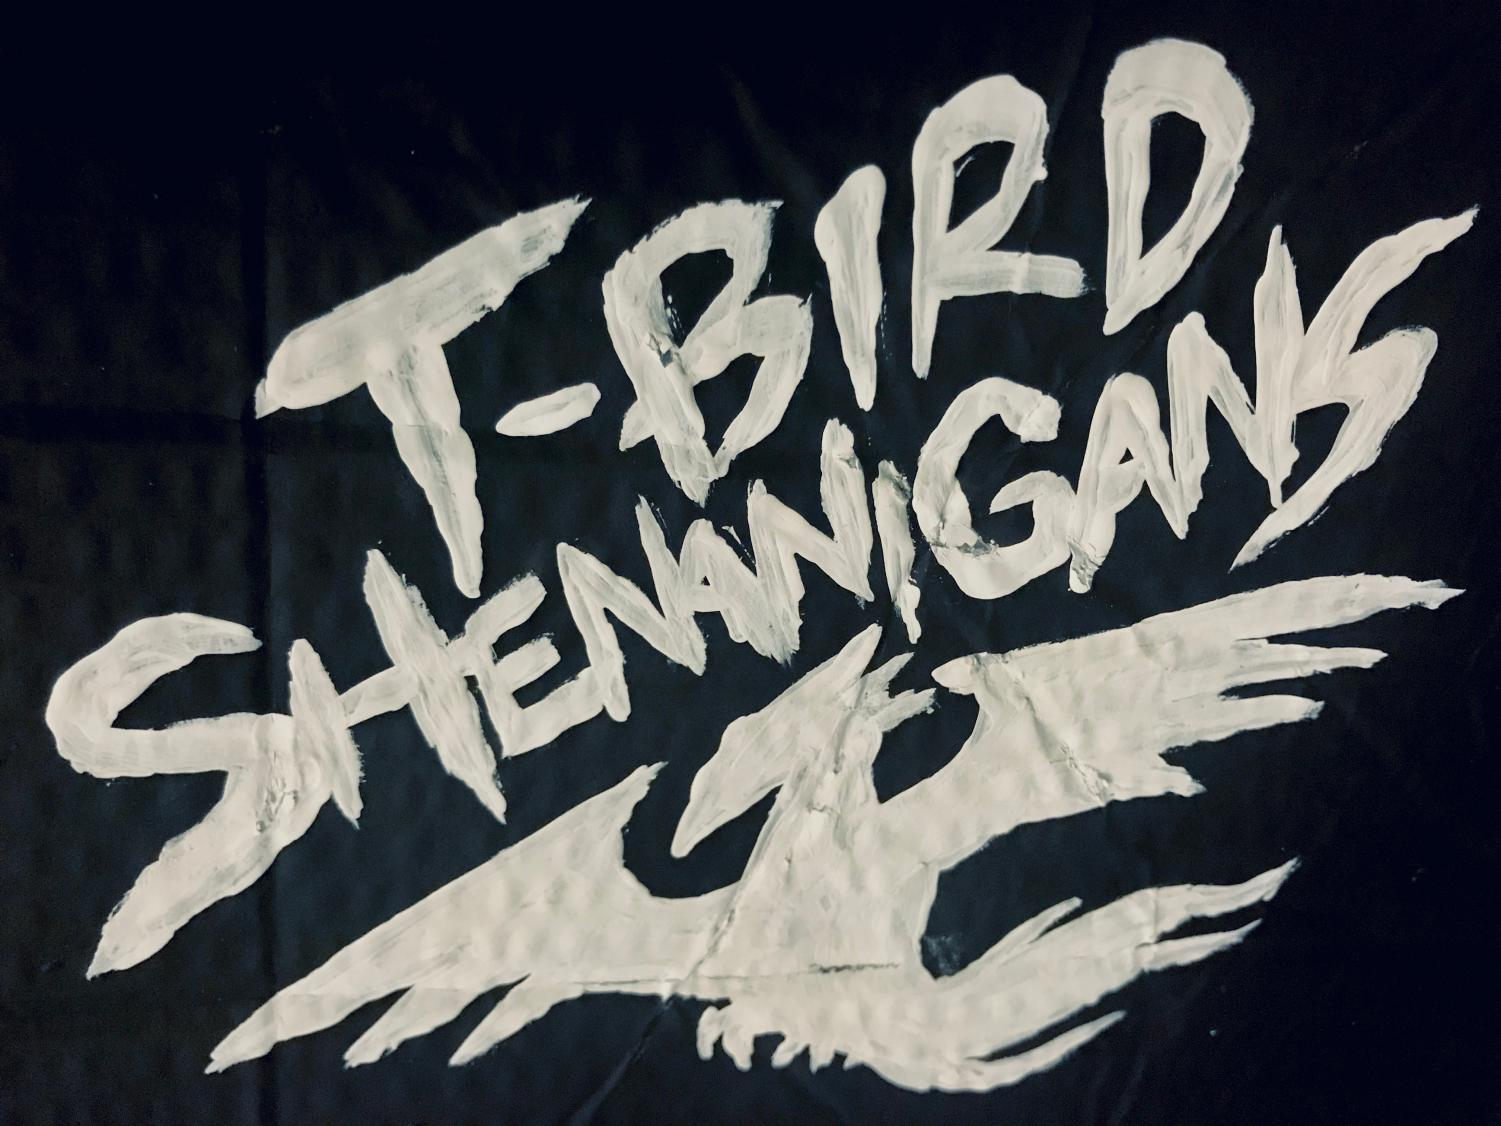 T-Bird Shenanigans S1:E4.3: Unsolved: The Winchester Mansion